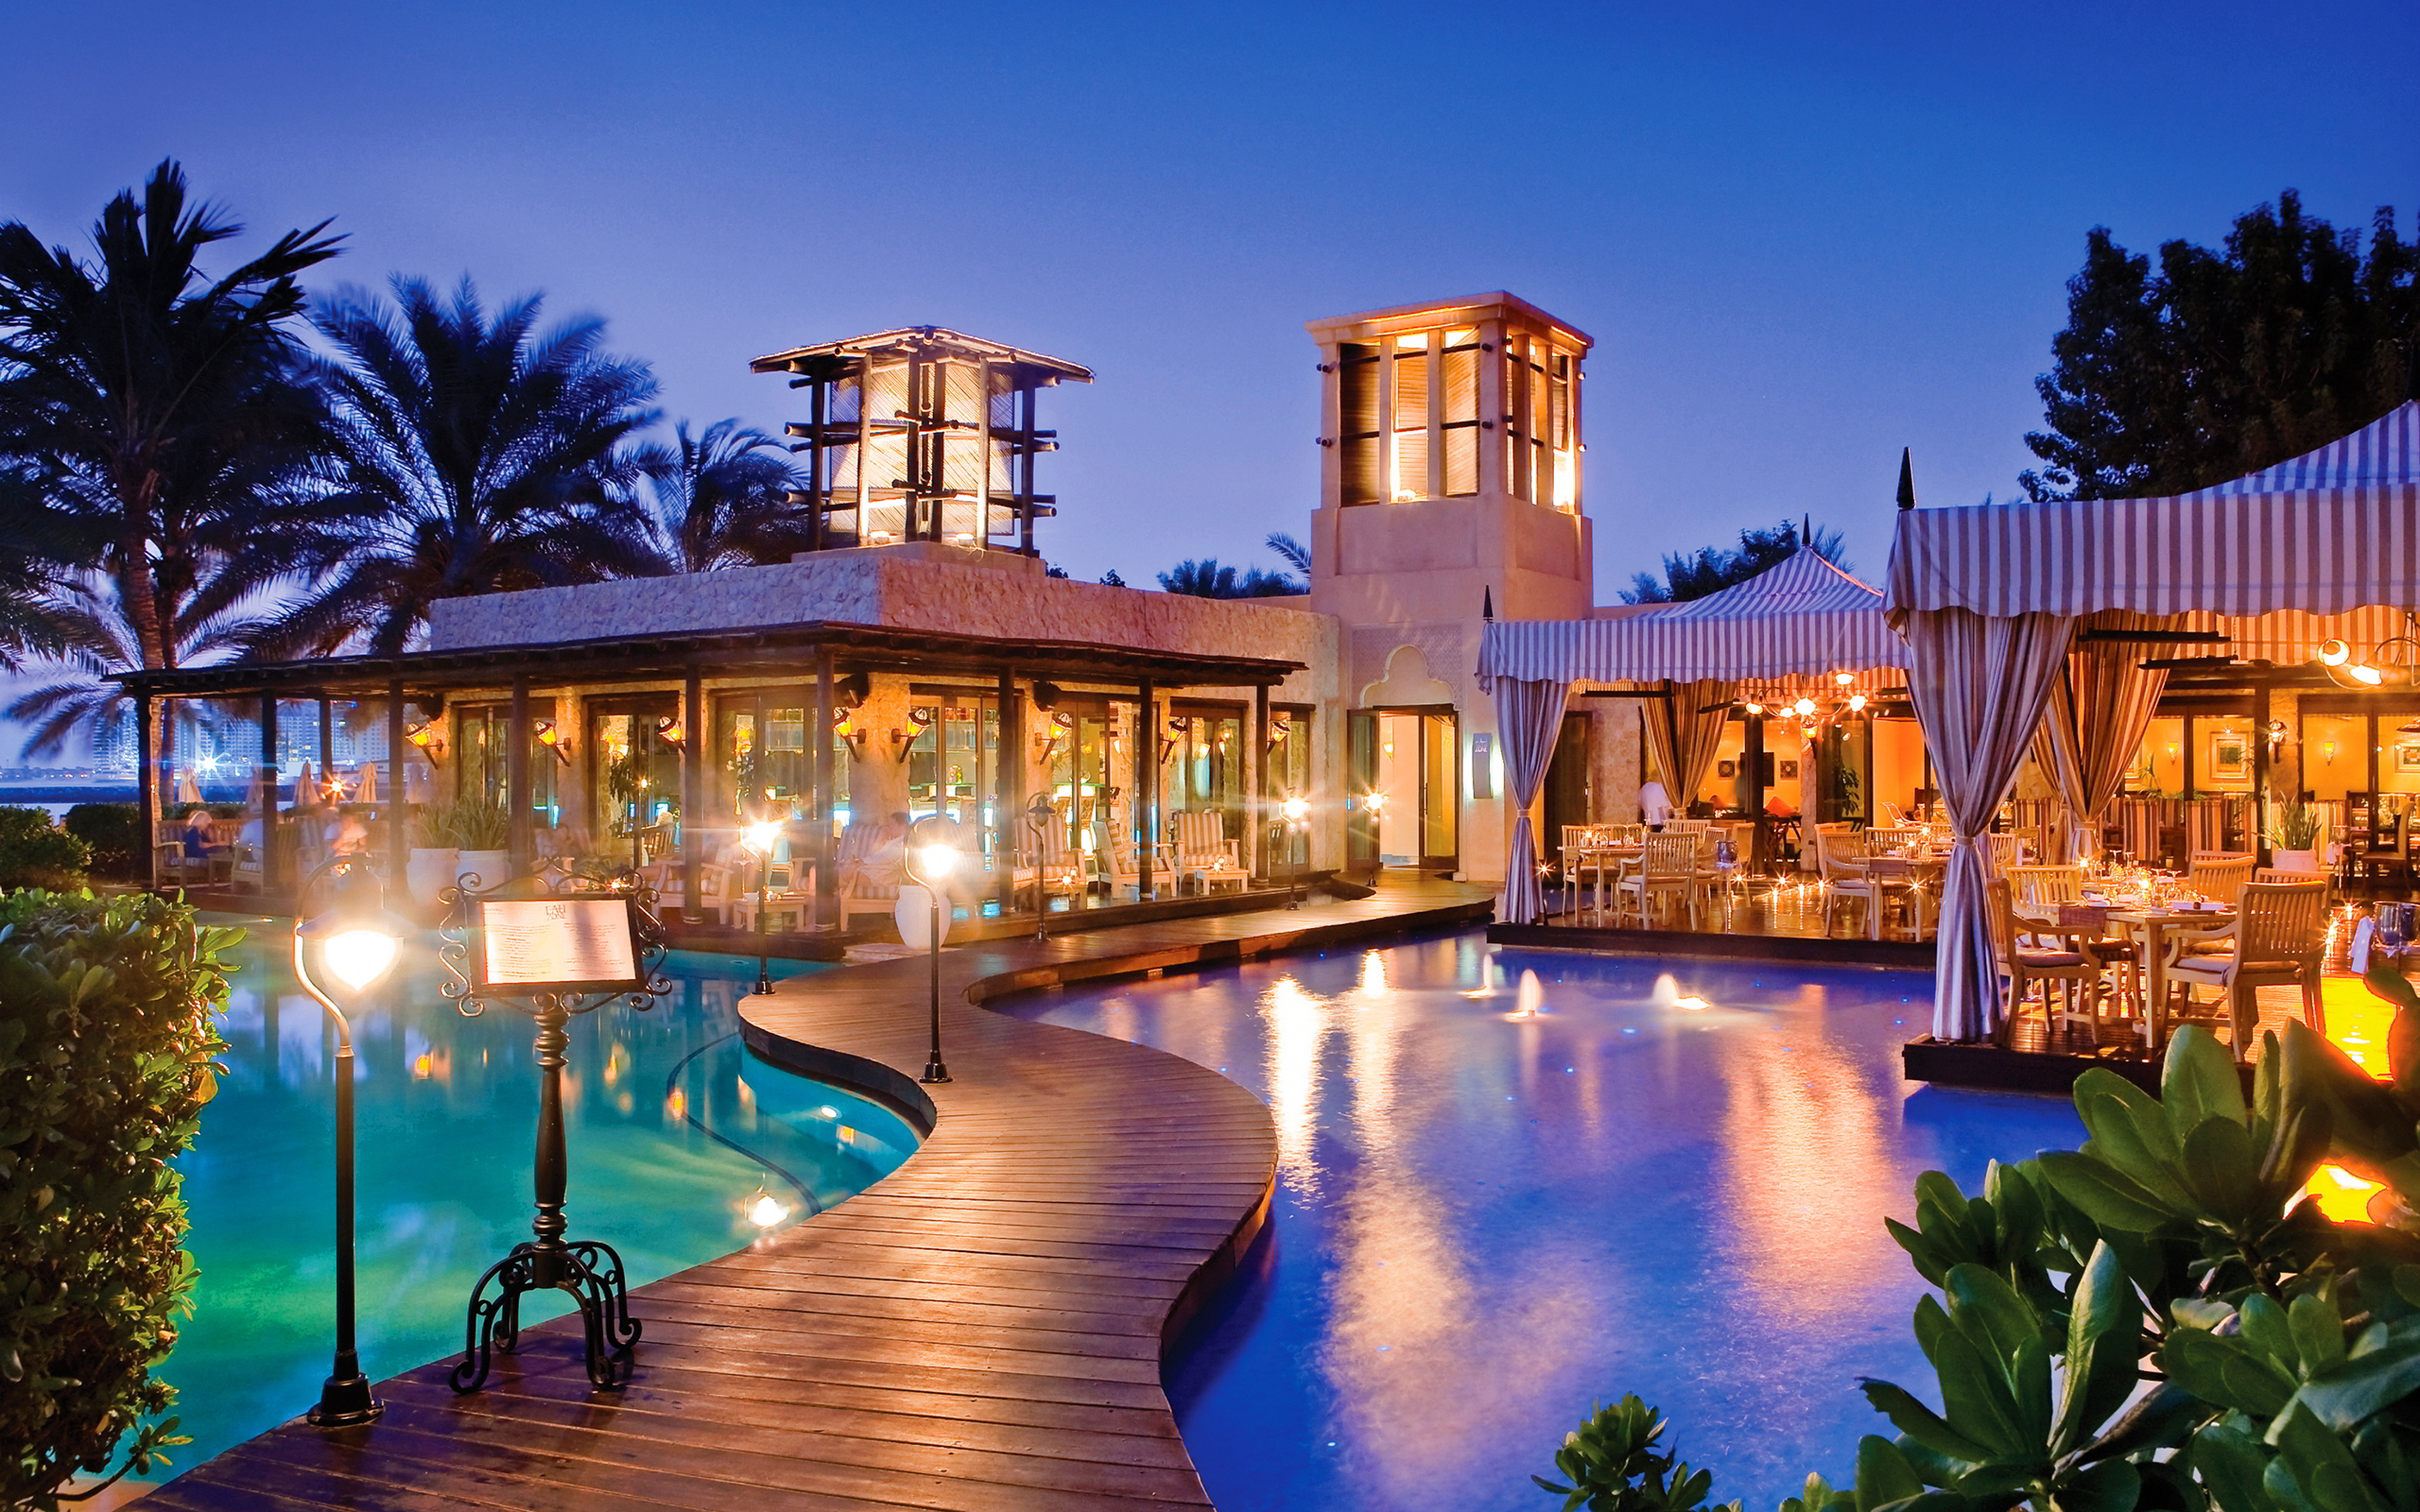 Royal mirage resort dubai